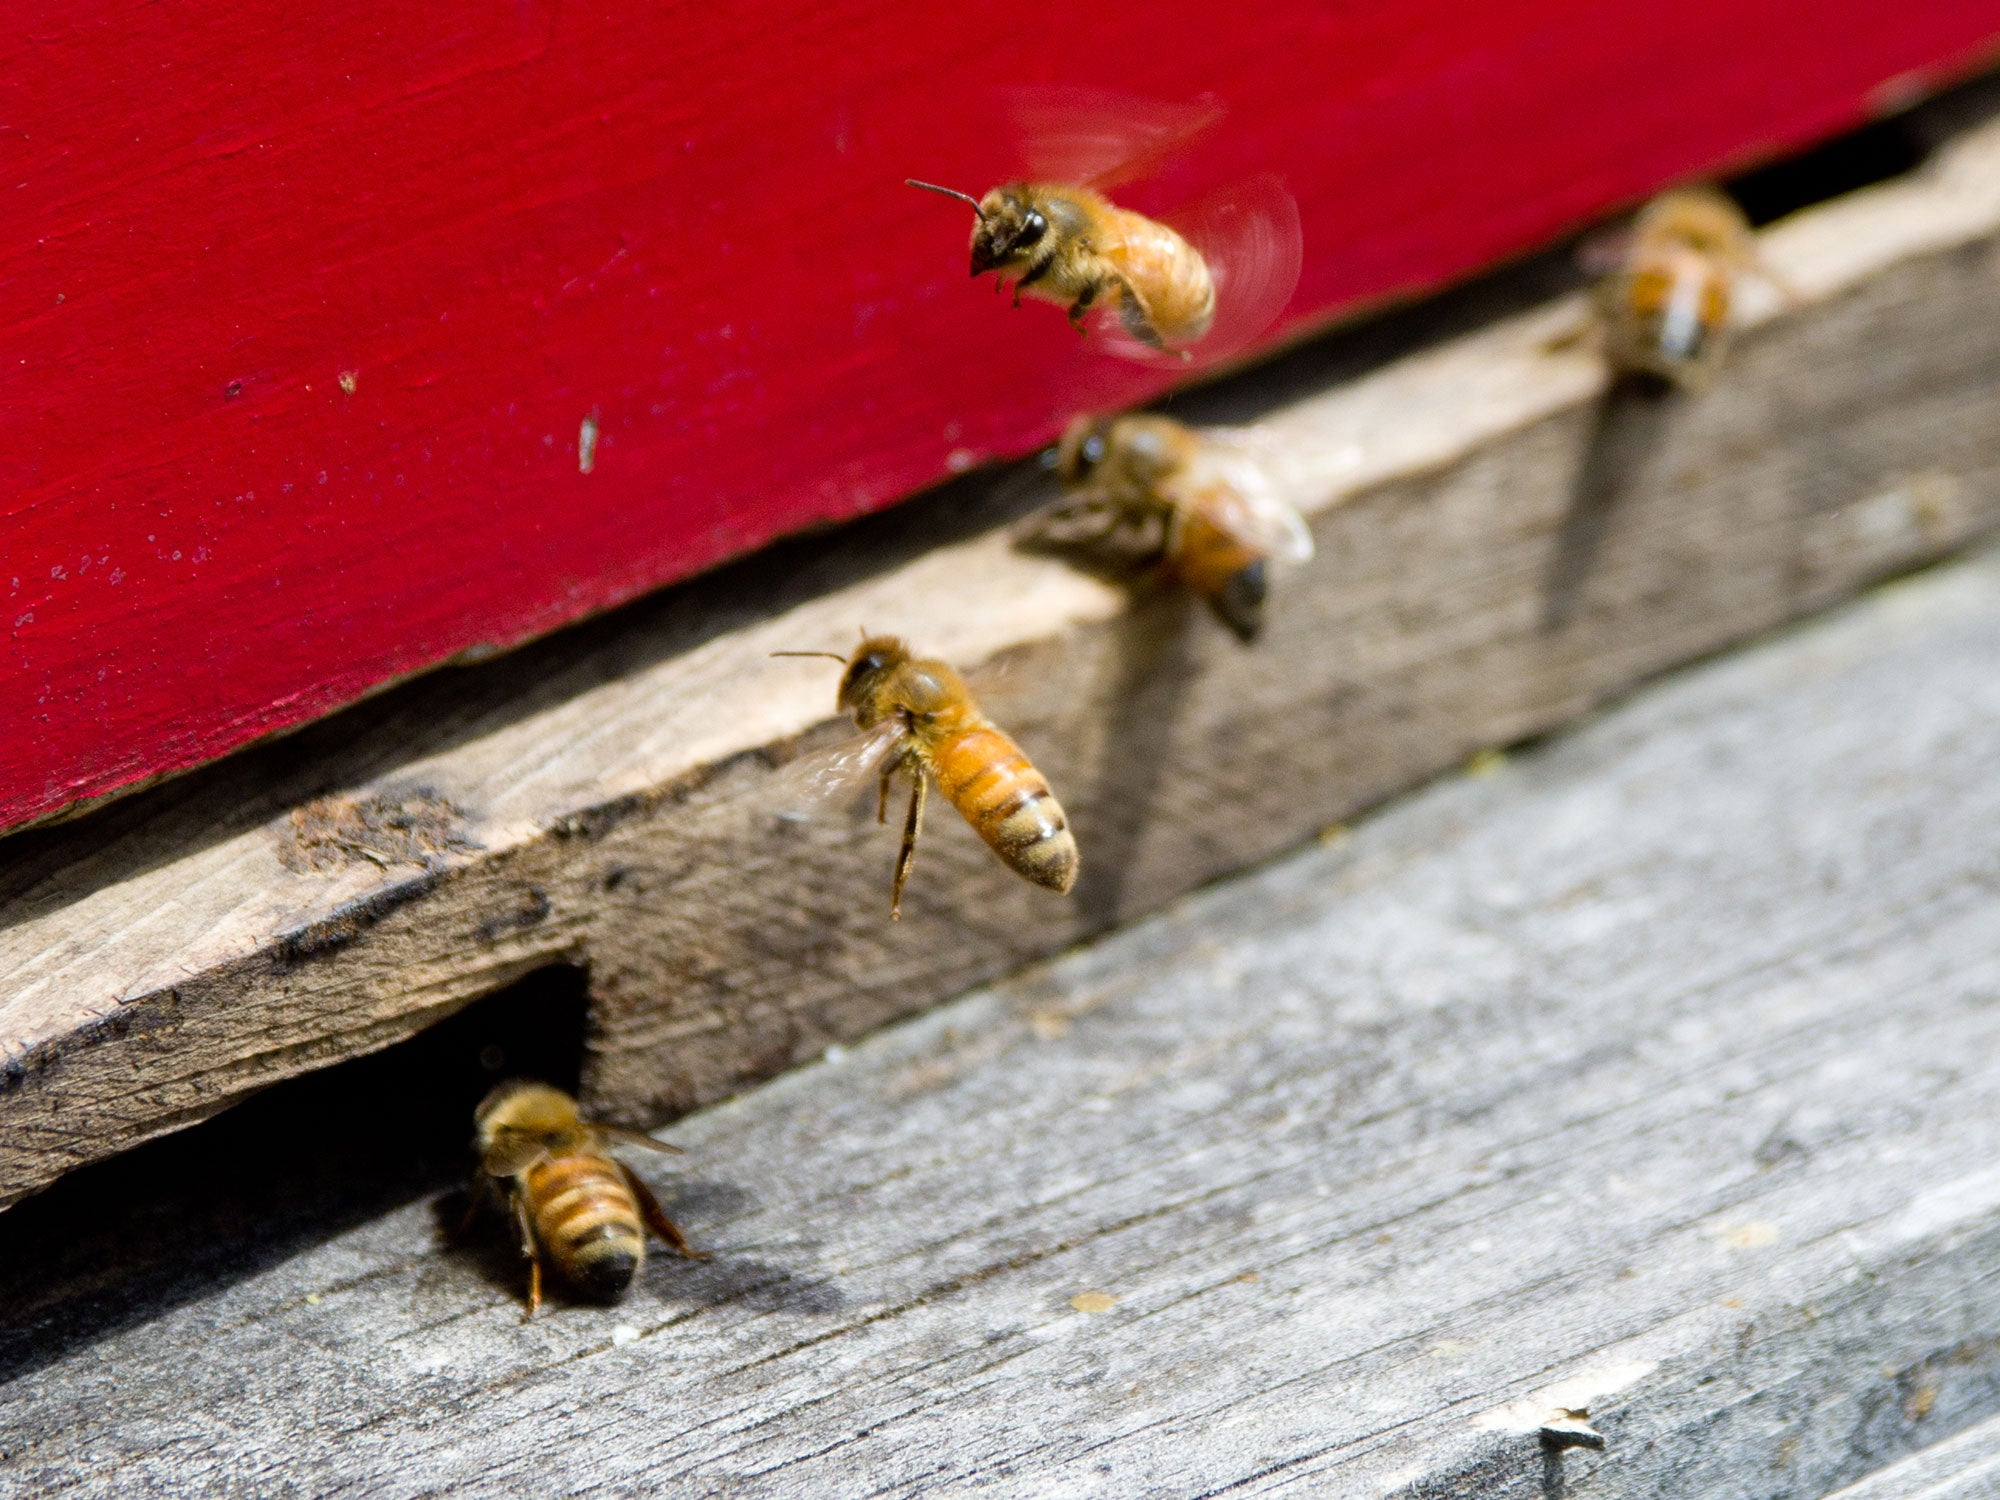 How Scientists Are Racing to Save Our Bees